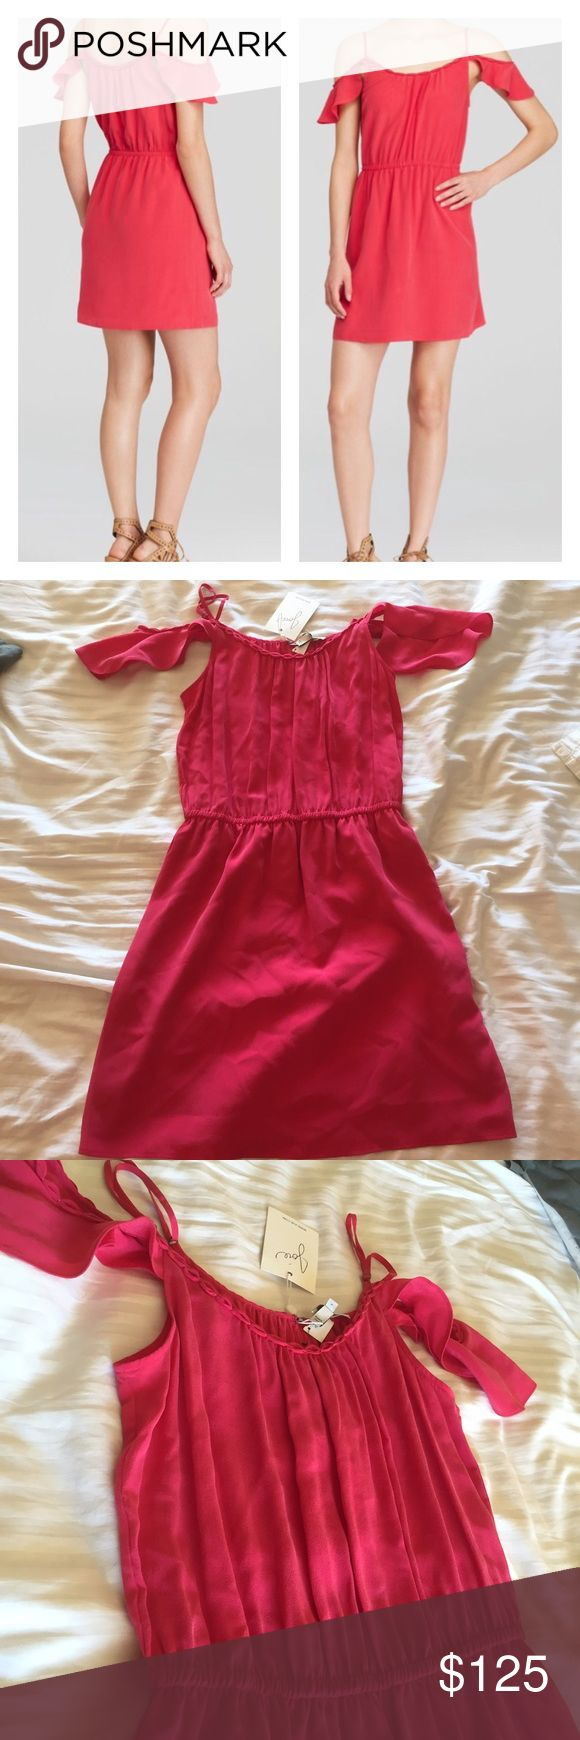 Joie Scari Dress Gorgeous watermelon colored Joie dress. Never worn. Brand new. NWOT Joie Dresses